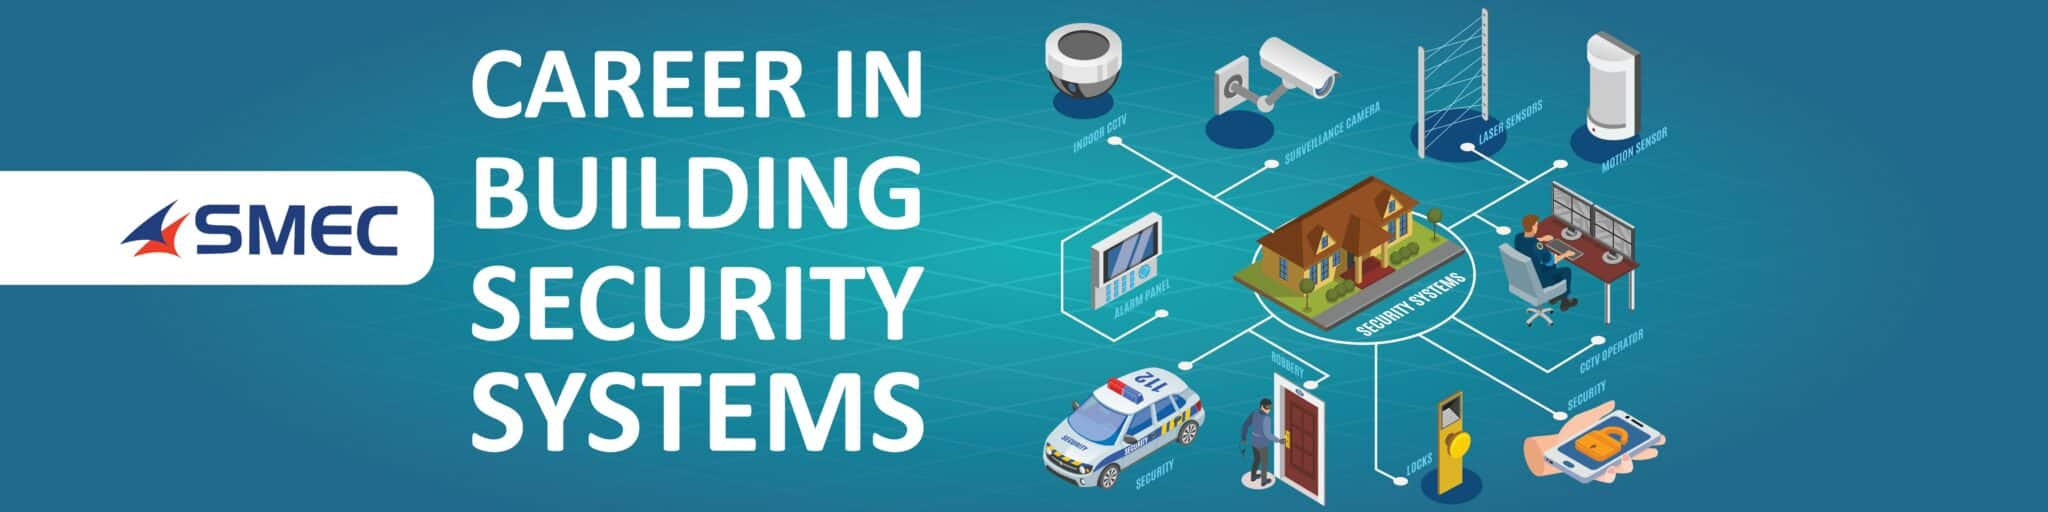 Career in Building Security Systems-BMS Online Training course-SMEClabs